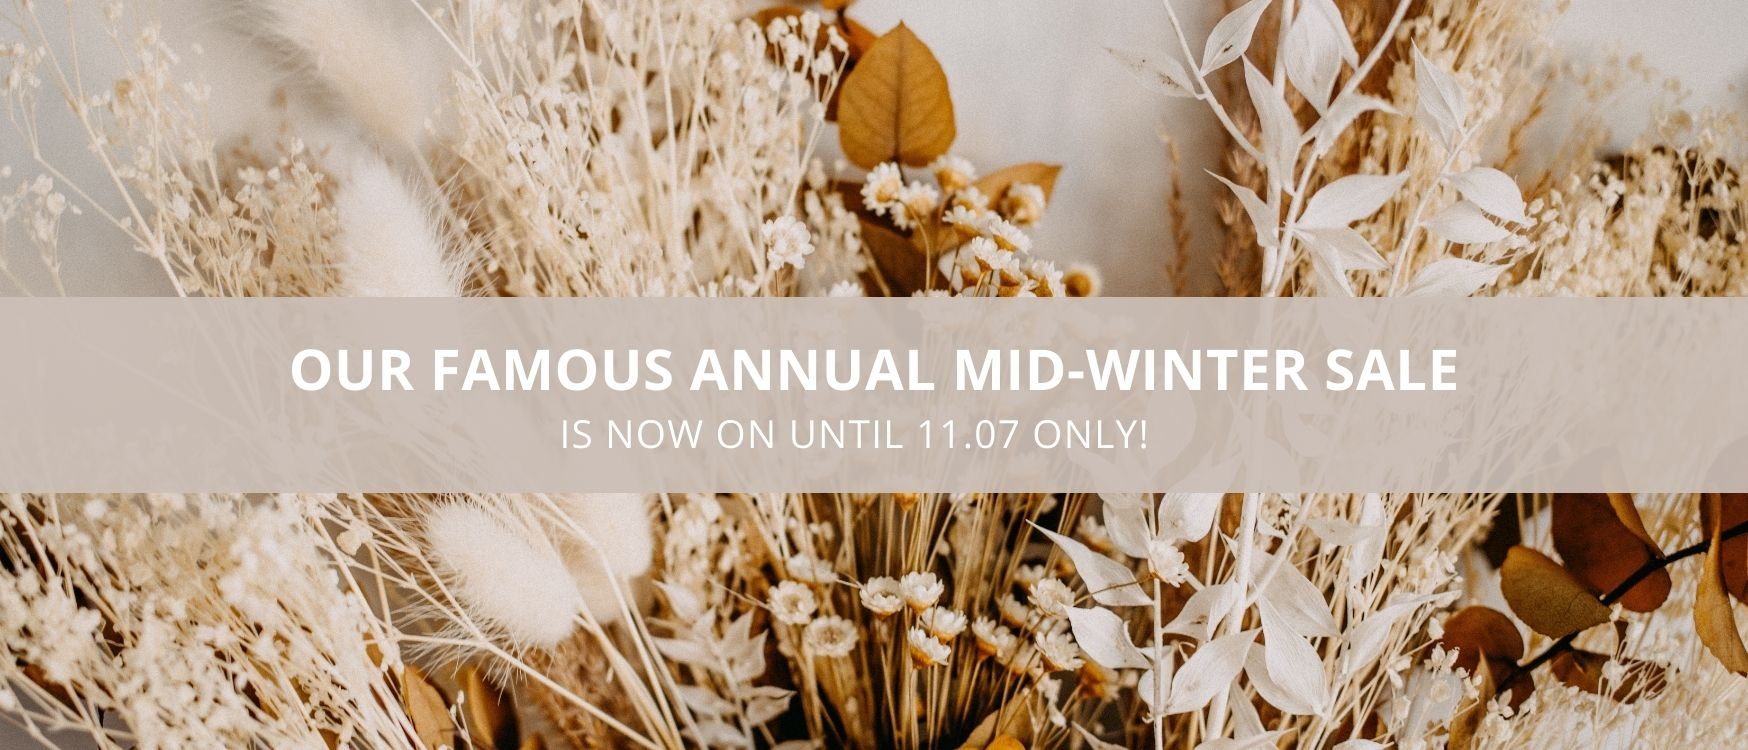 Karibou annual mid-winter sale is now on for 5 days only. Save up to 50% off on quality NZ designed kids clothing sale items.